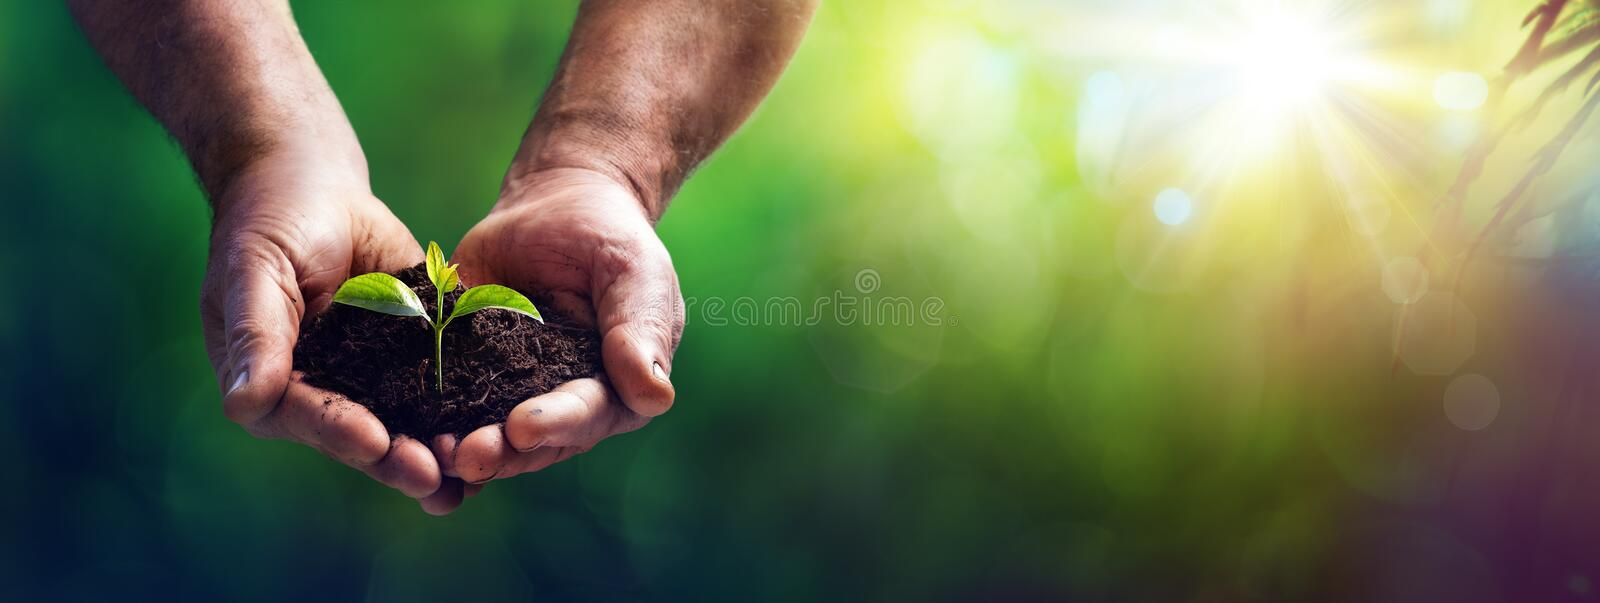 Small Plant In Old Hands - Care And Protection Concept royalty free stock photo